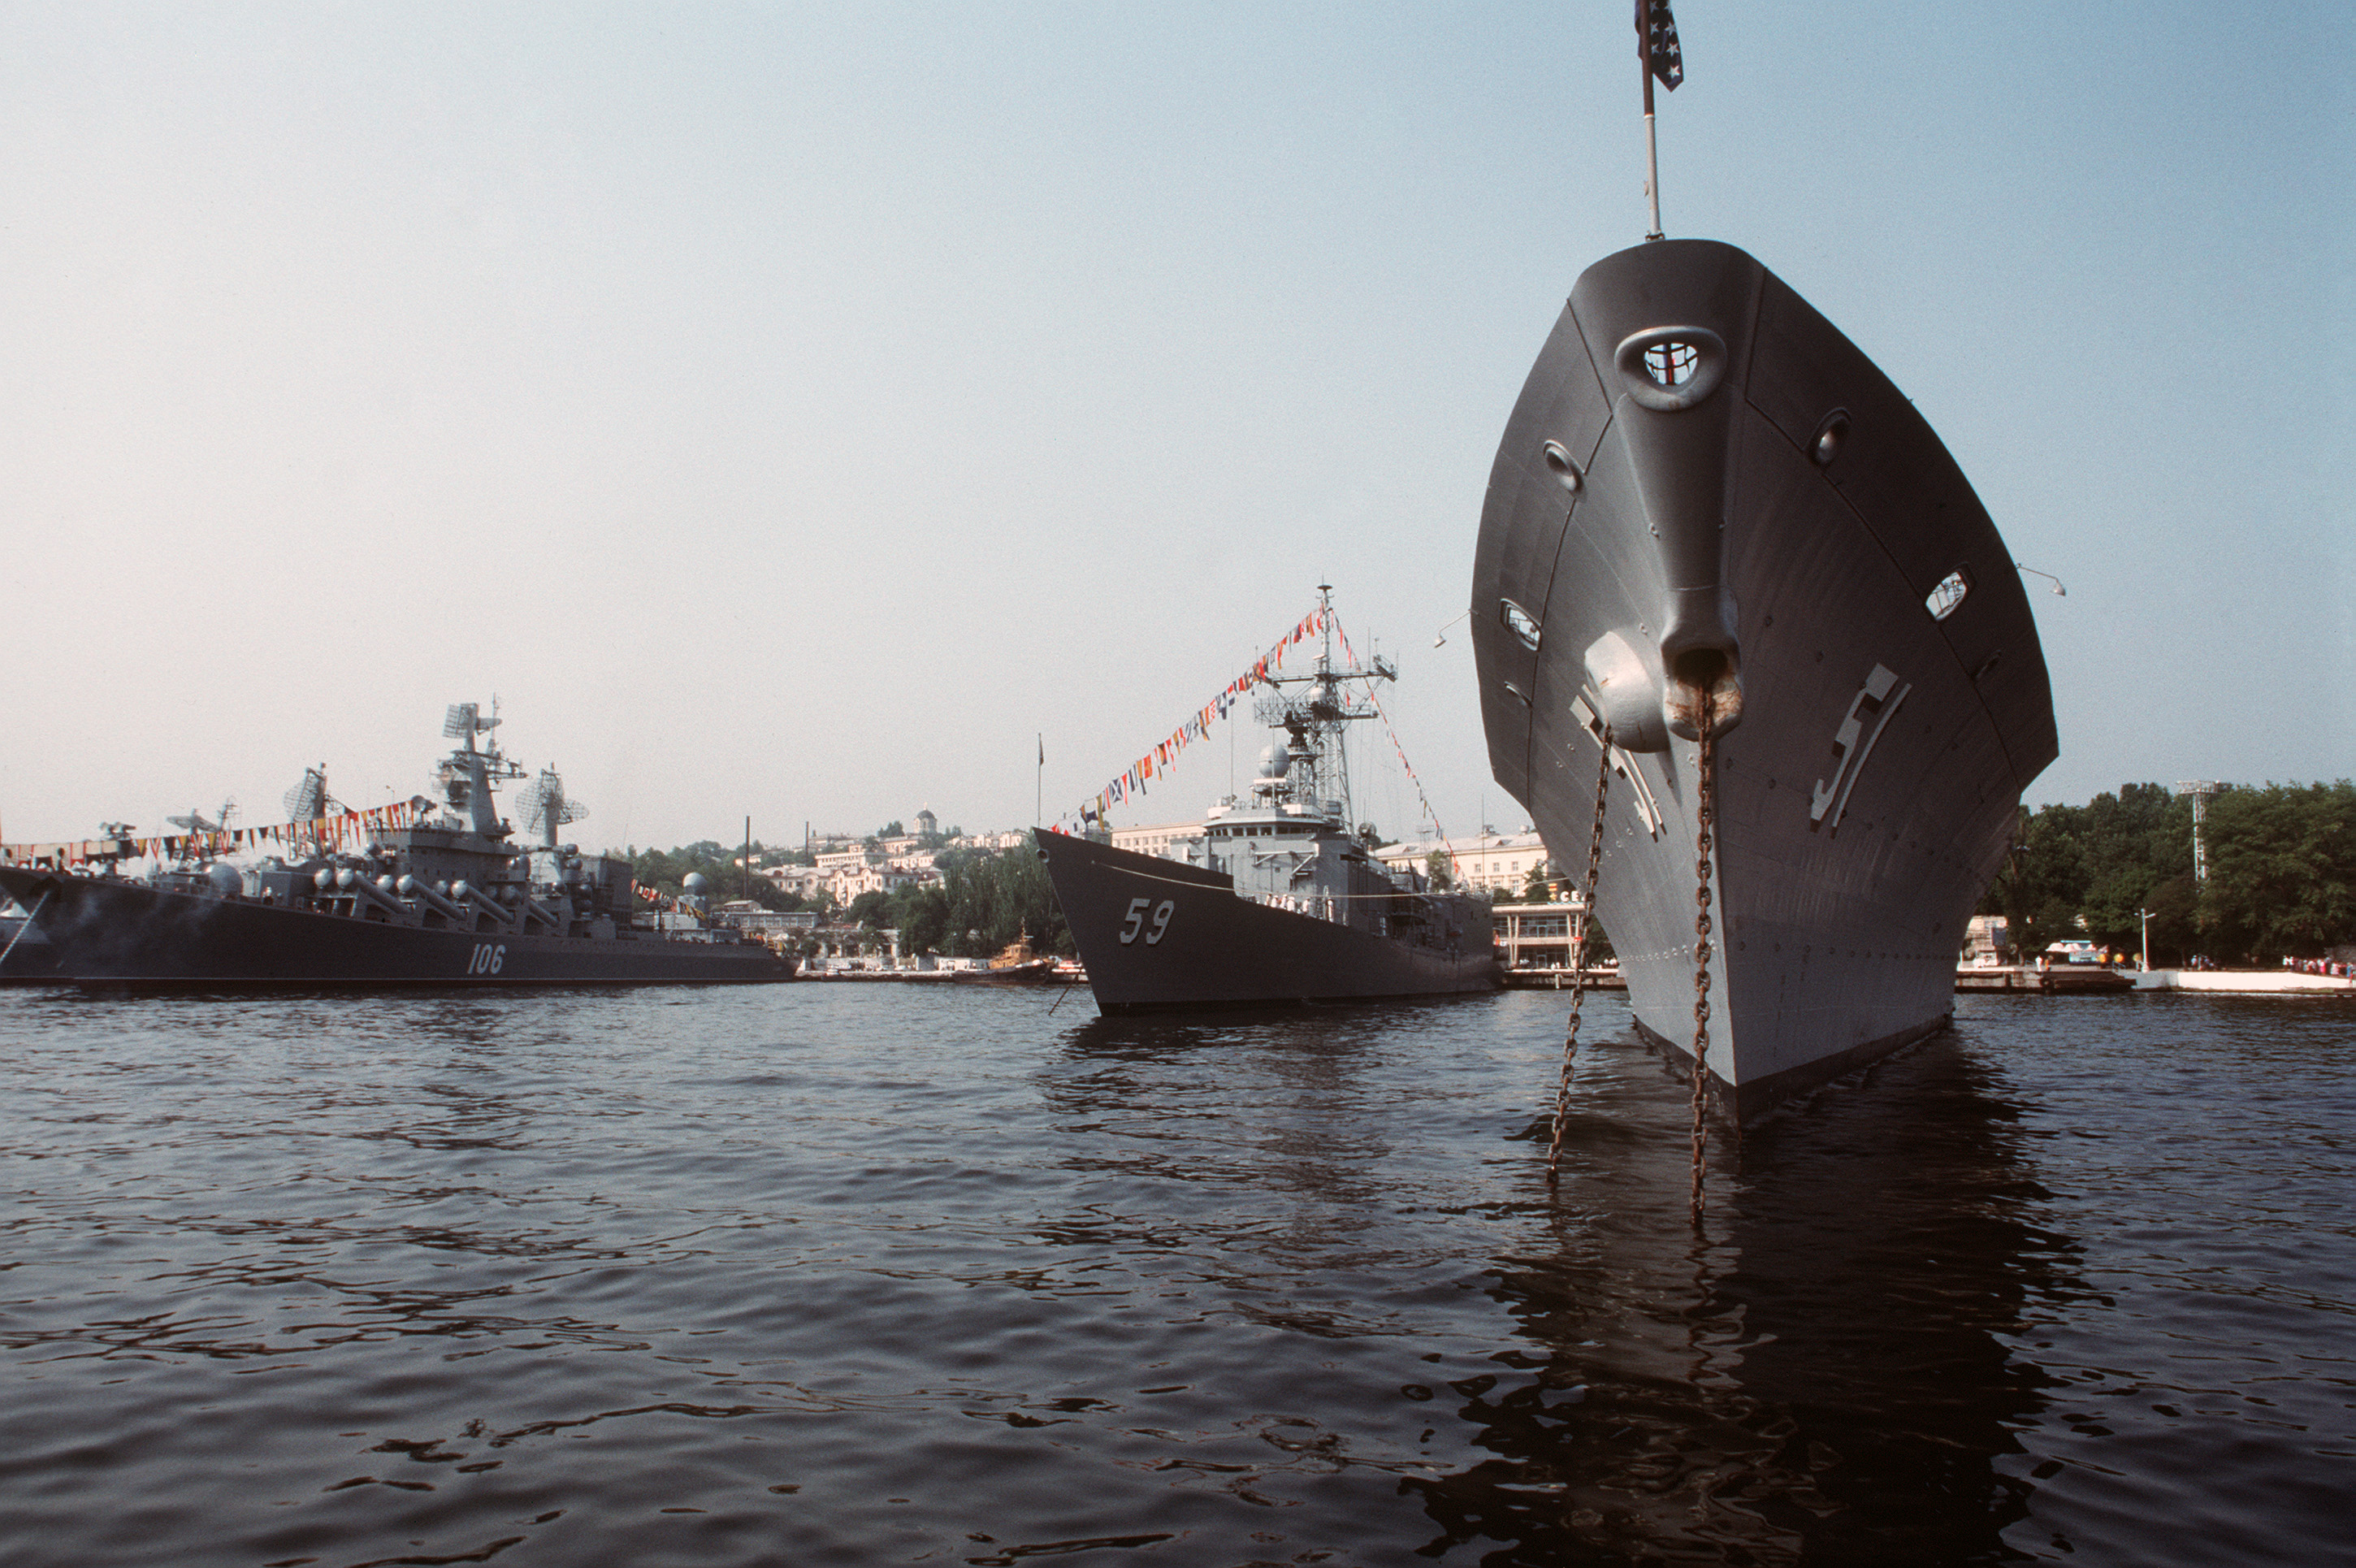 The Aegis guided missile cruiser USS THOMAS S. GATES (CG-51) and the guided missile frigate USS KAUFFMAN (FFG-59) ride at anchor in the harbor. To their left is the Soviet guided missile cruiser Slava in 1989. US Navy Photo